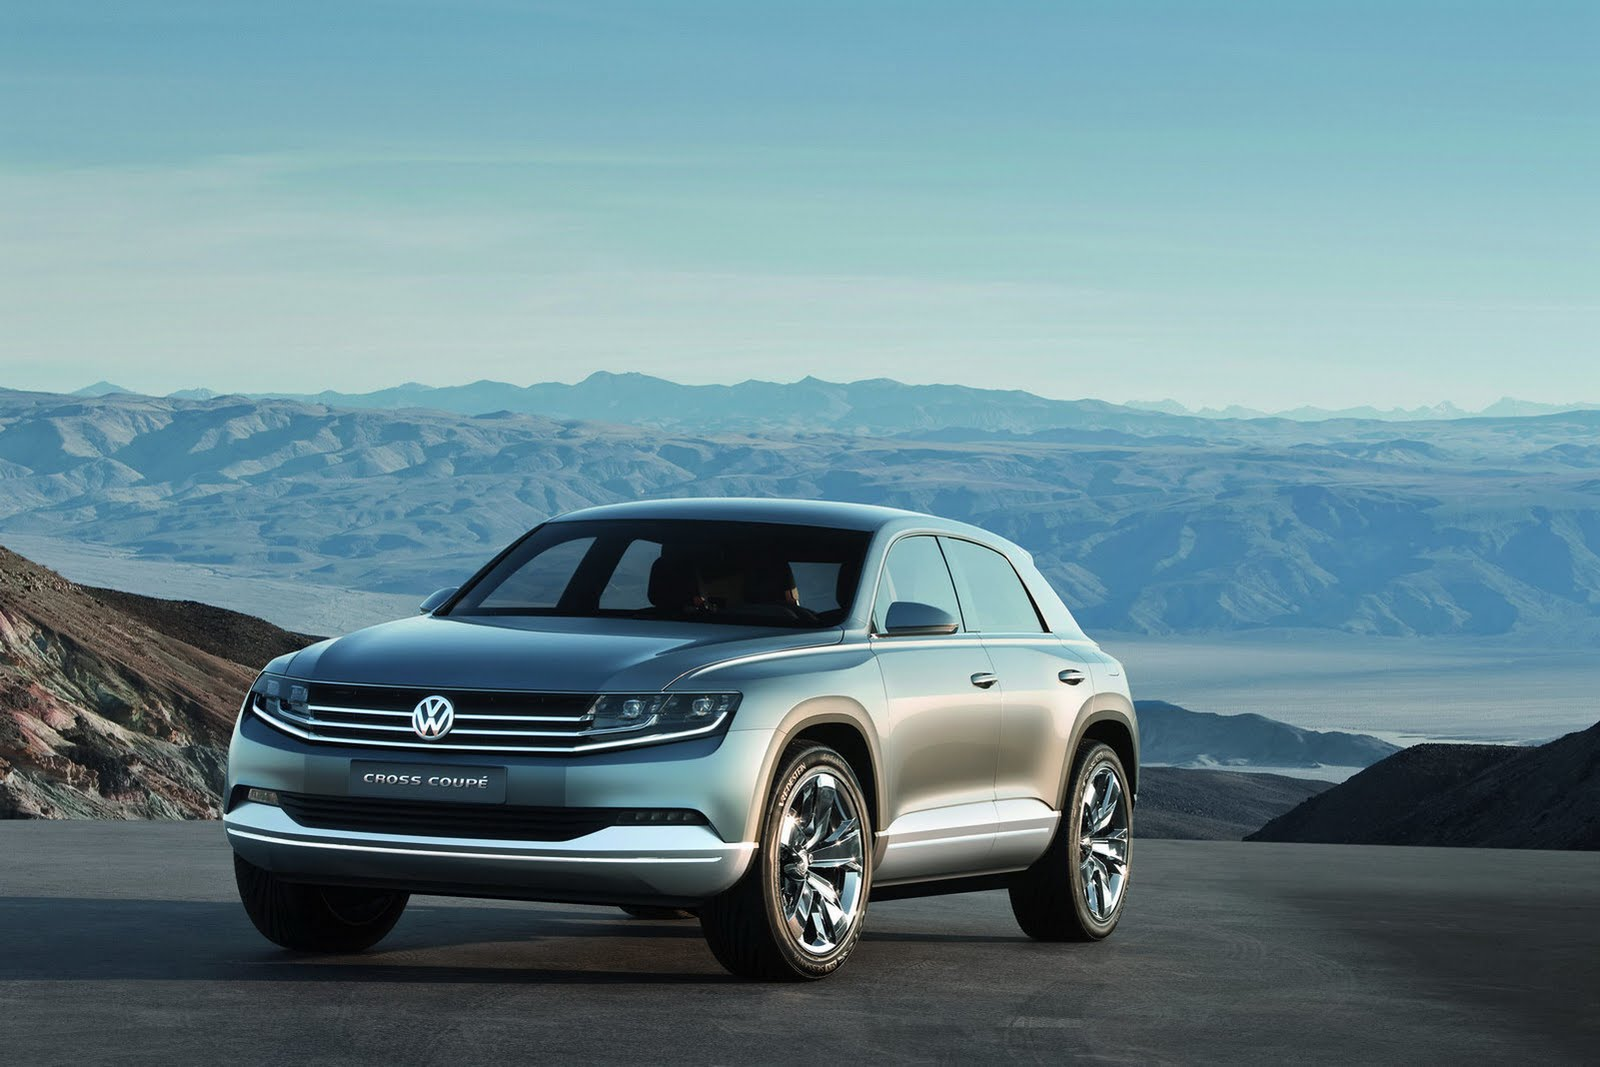 Photo of Volkswagen Cross Coupe SUV [concept]